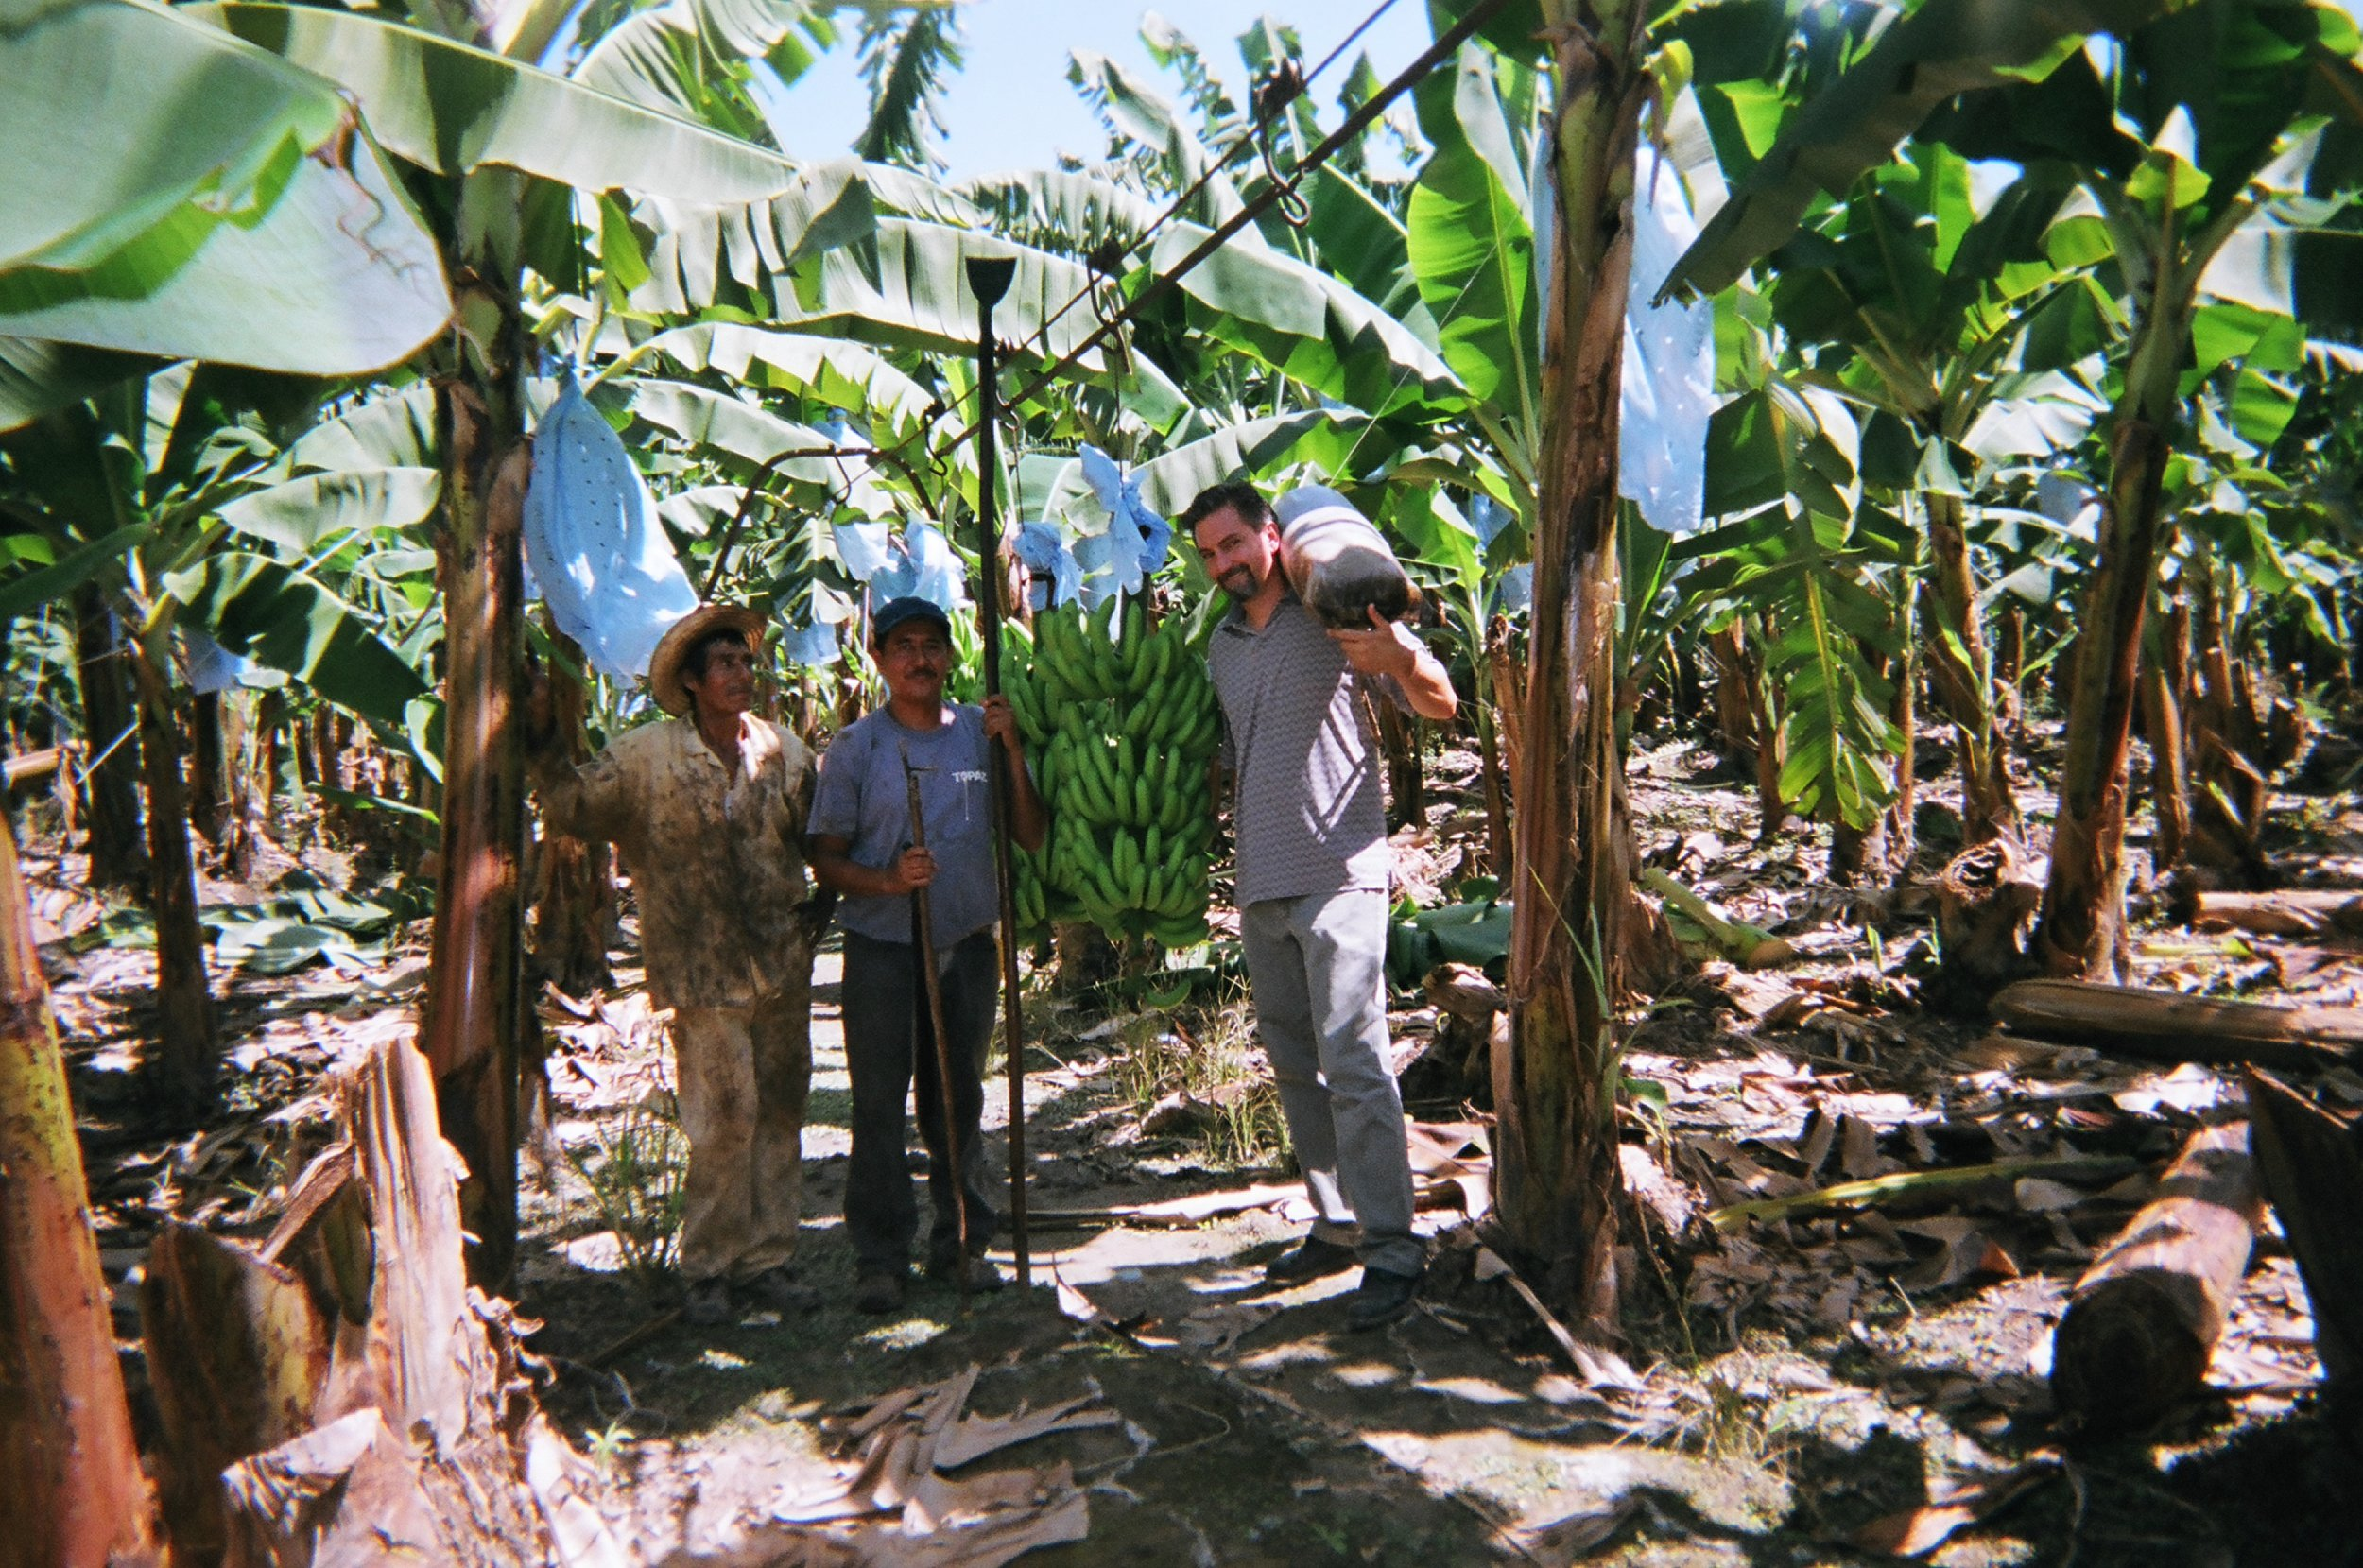 Learning about how things are done to harvest bananas in Guatemala 6 days a week for $200 dollars a month on the best paying jobs.